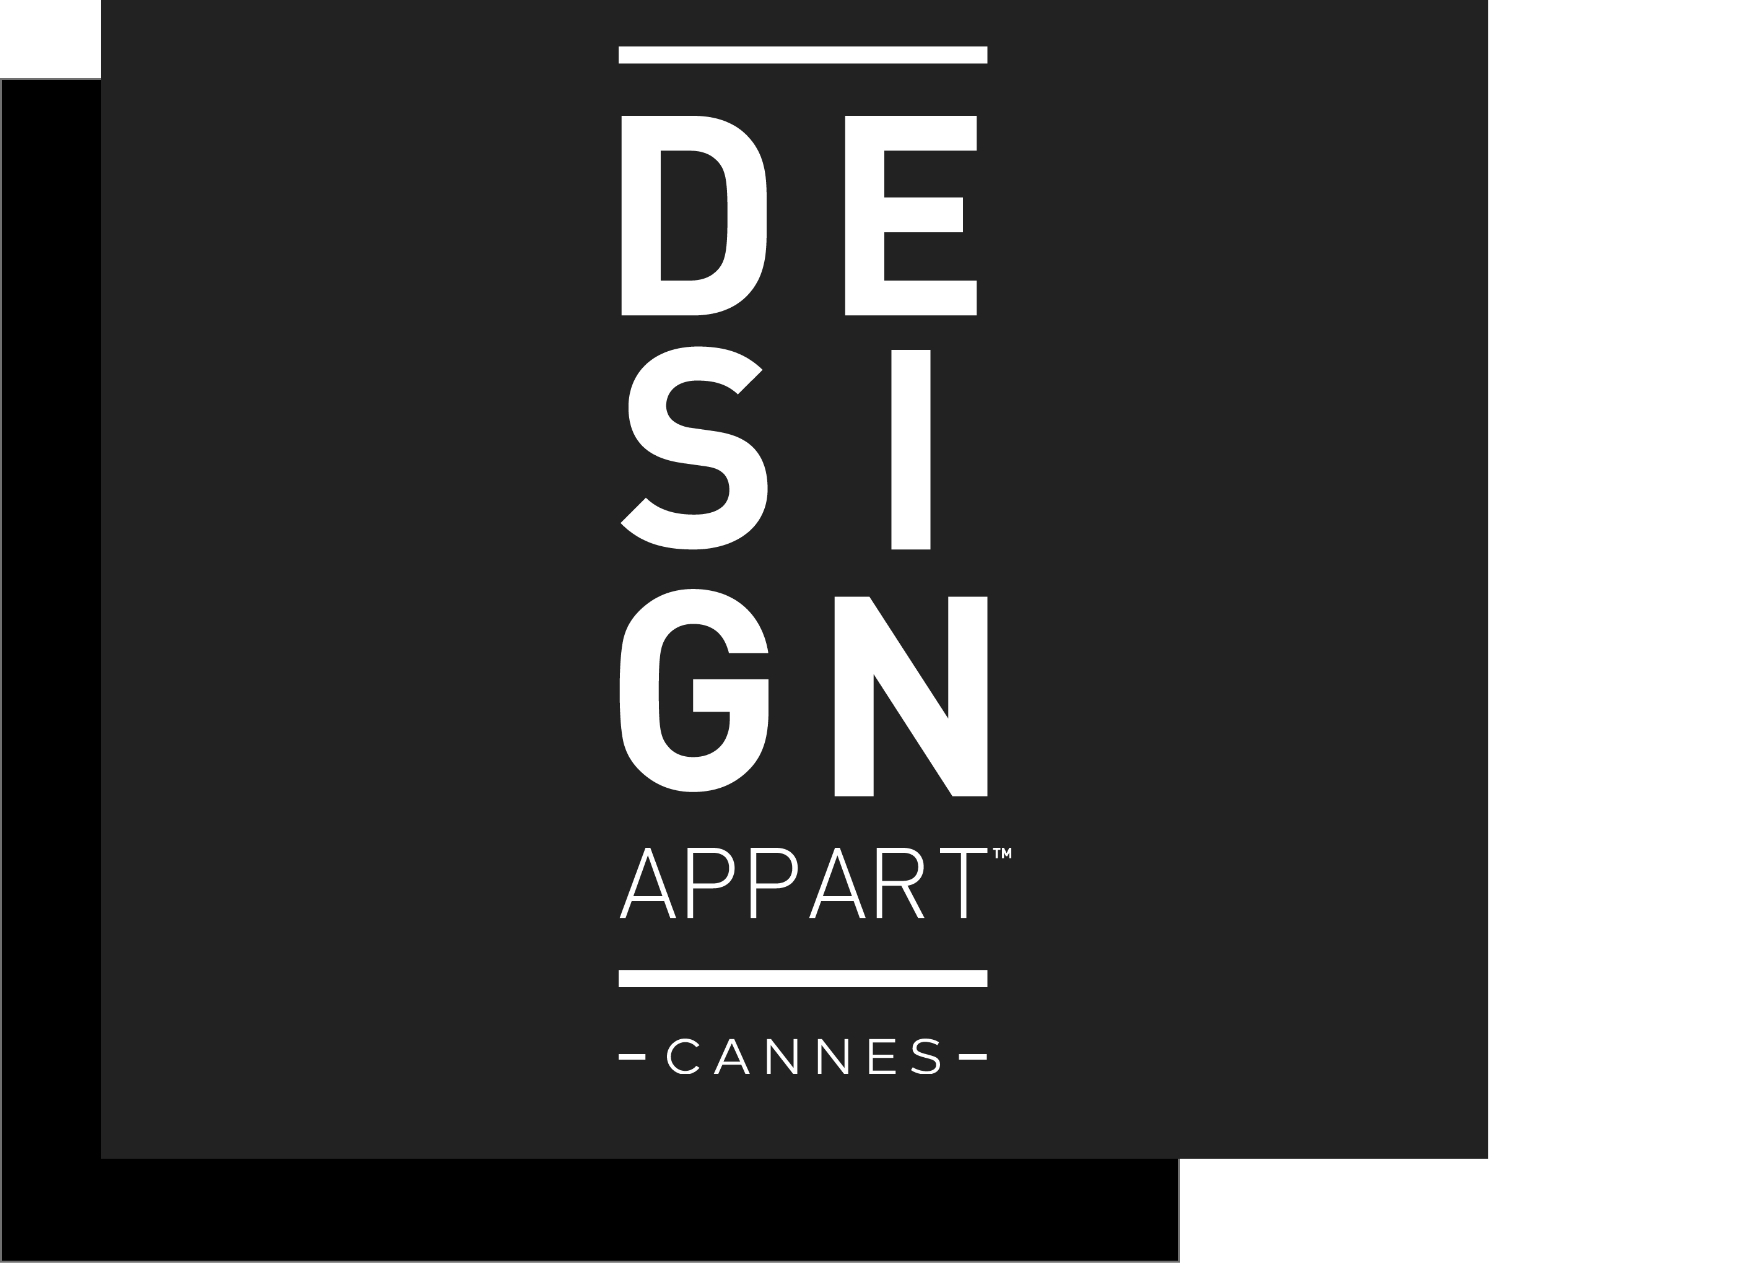 design appart cannes agence karma communication